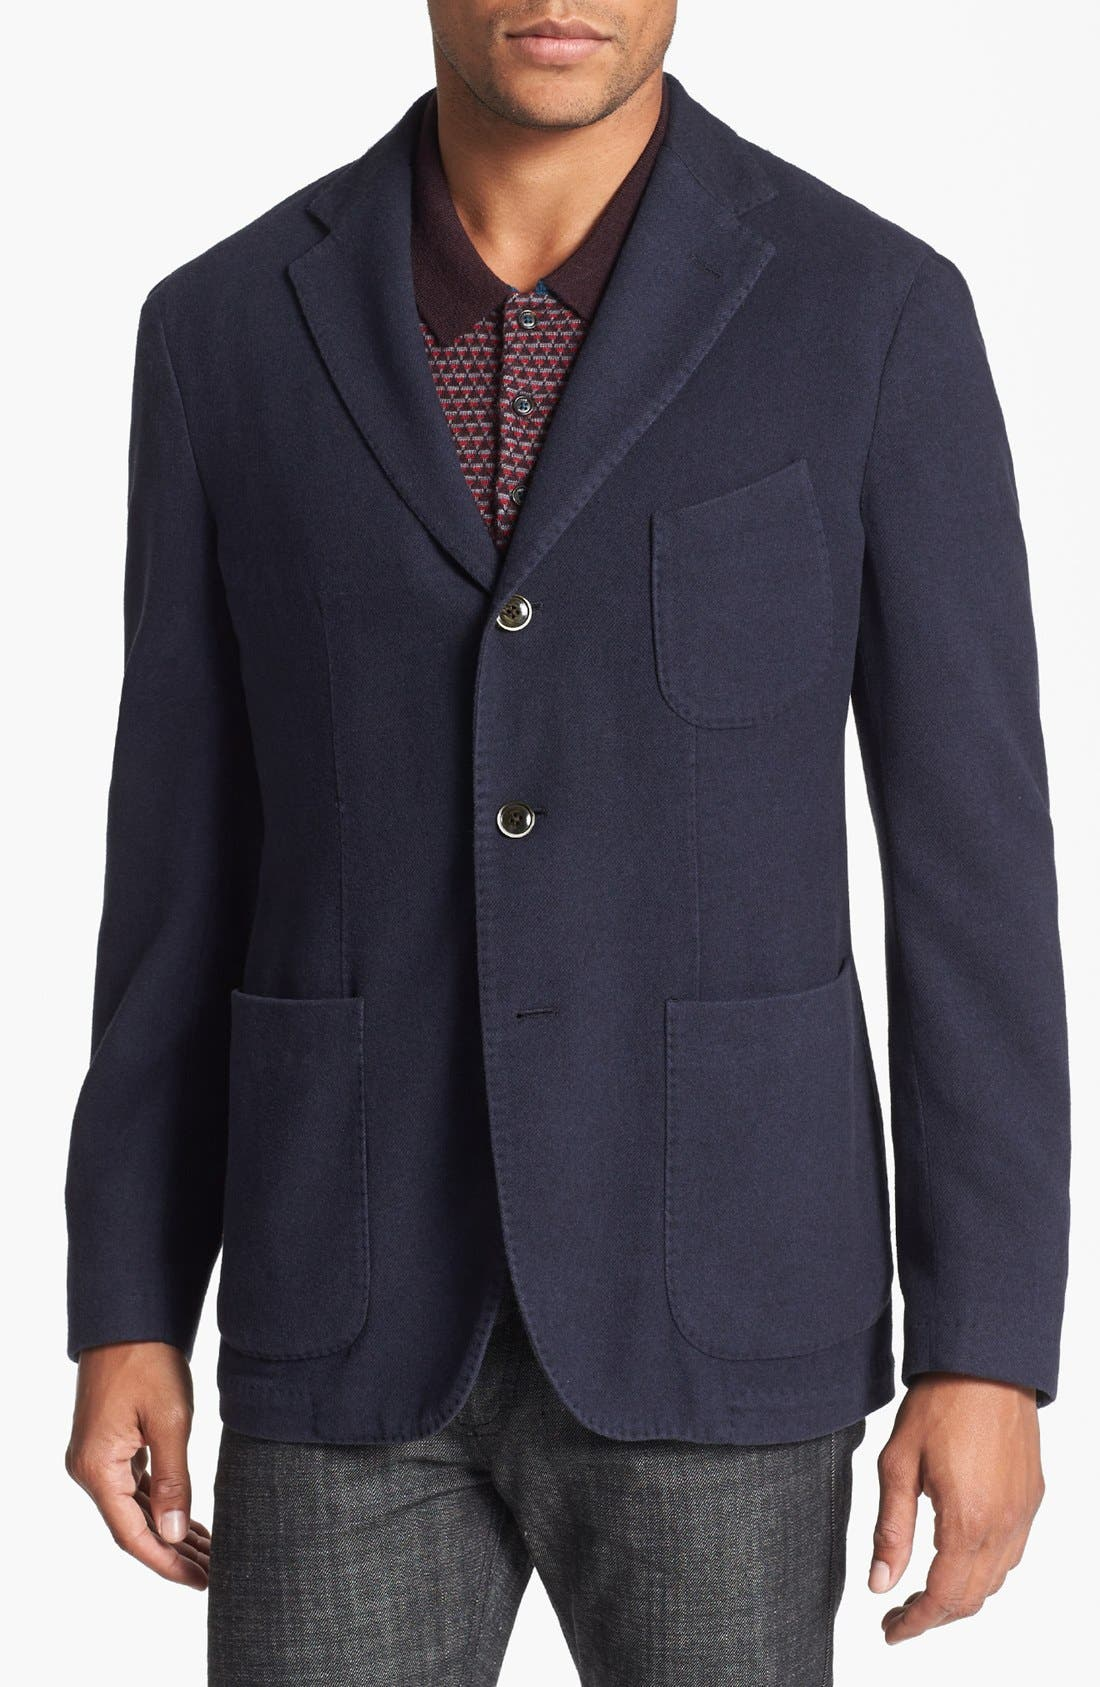 Alternate Image 1 Selected - Canali Silk & Cashmere Sportcoat